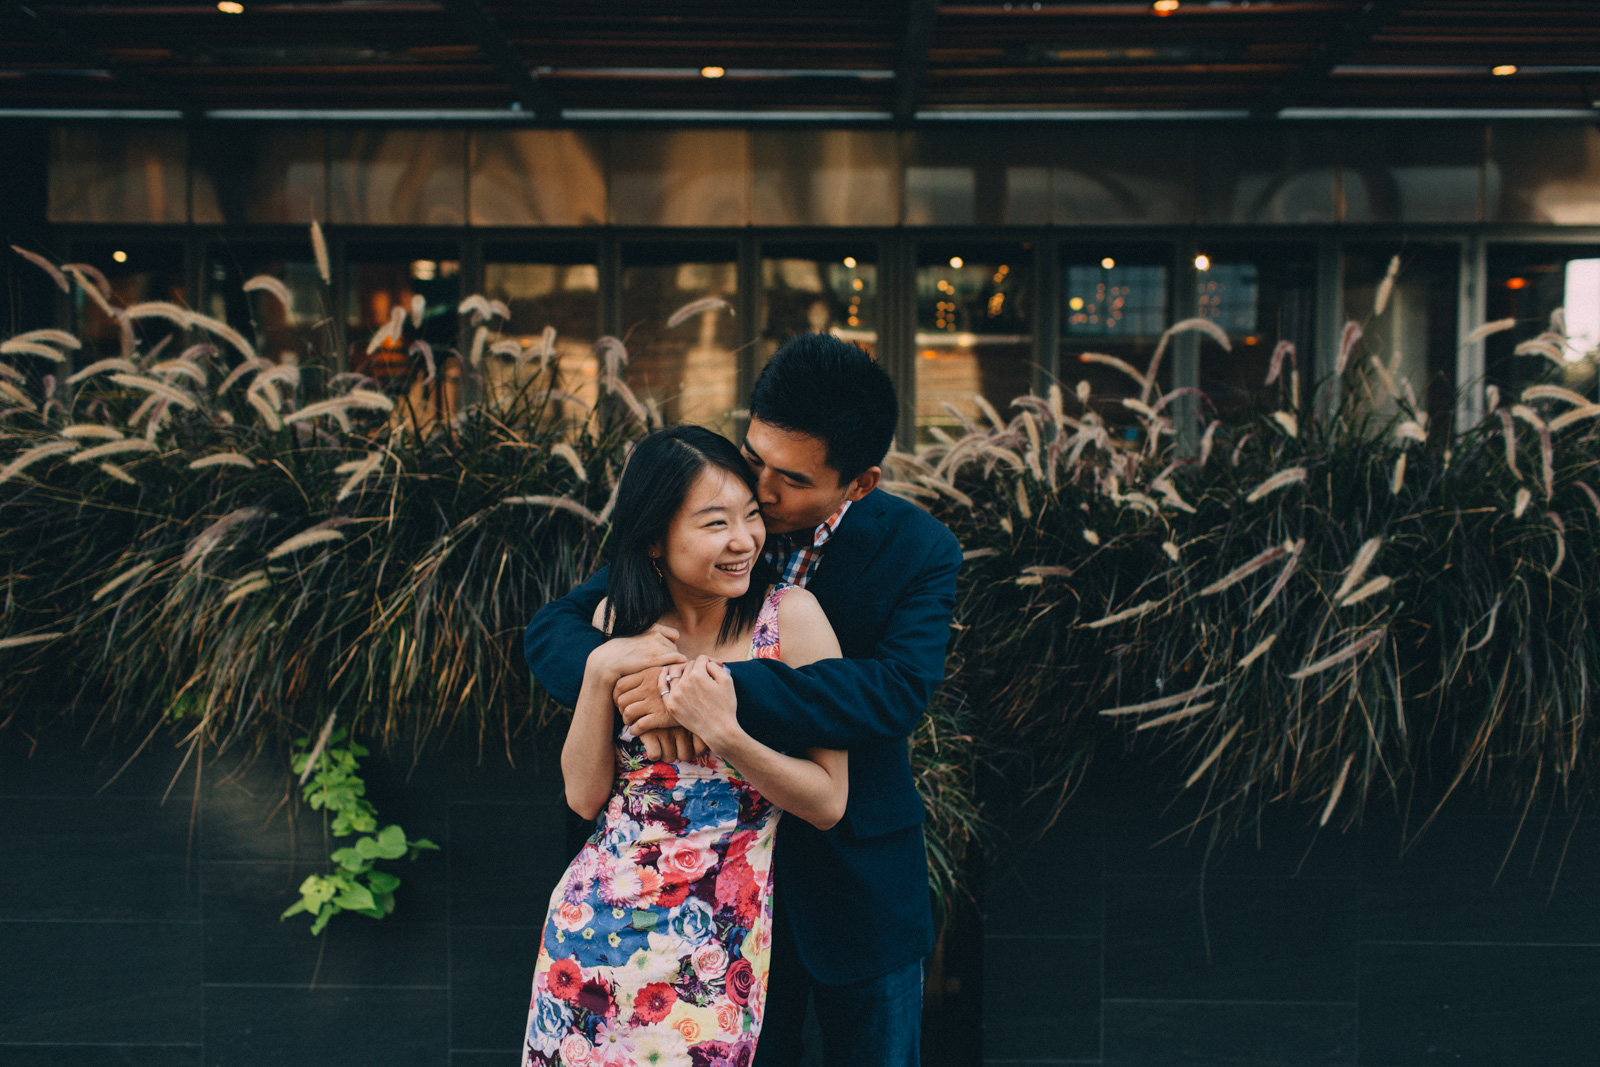 Distillery-District-engagement-photos-Toronto-wedding-photography-by-Sam-Wong-of-Artanis-Collective_003.jpg